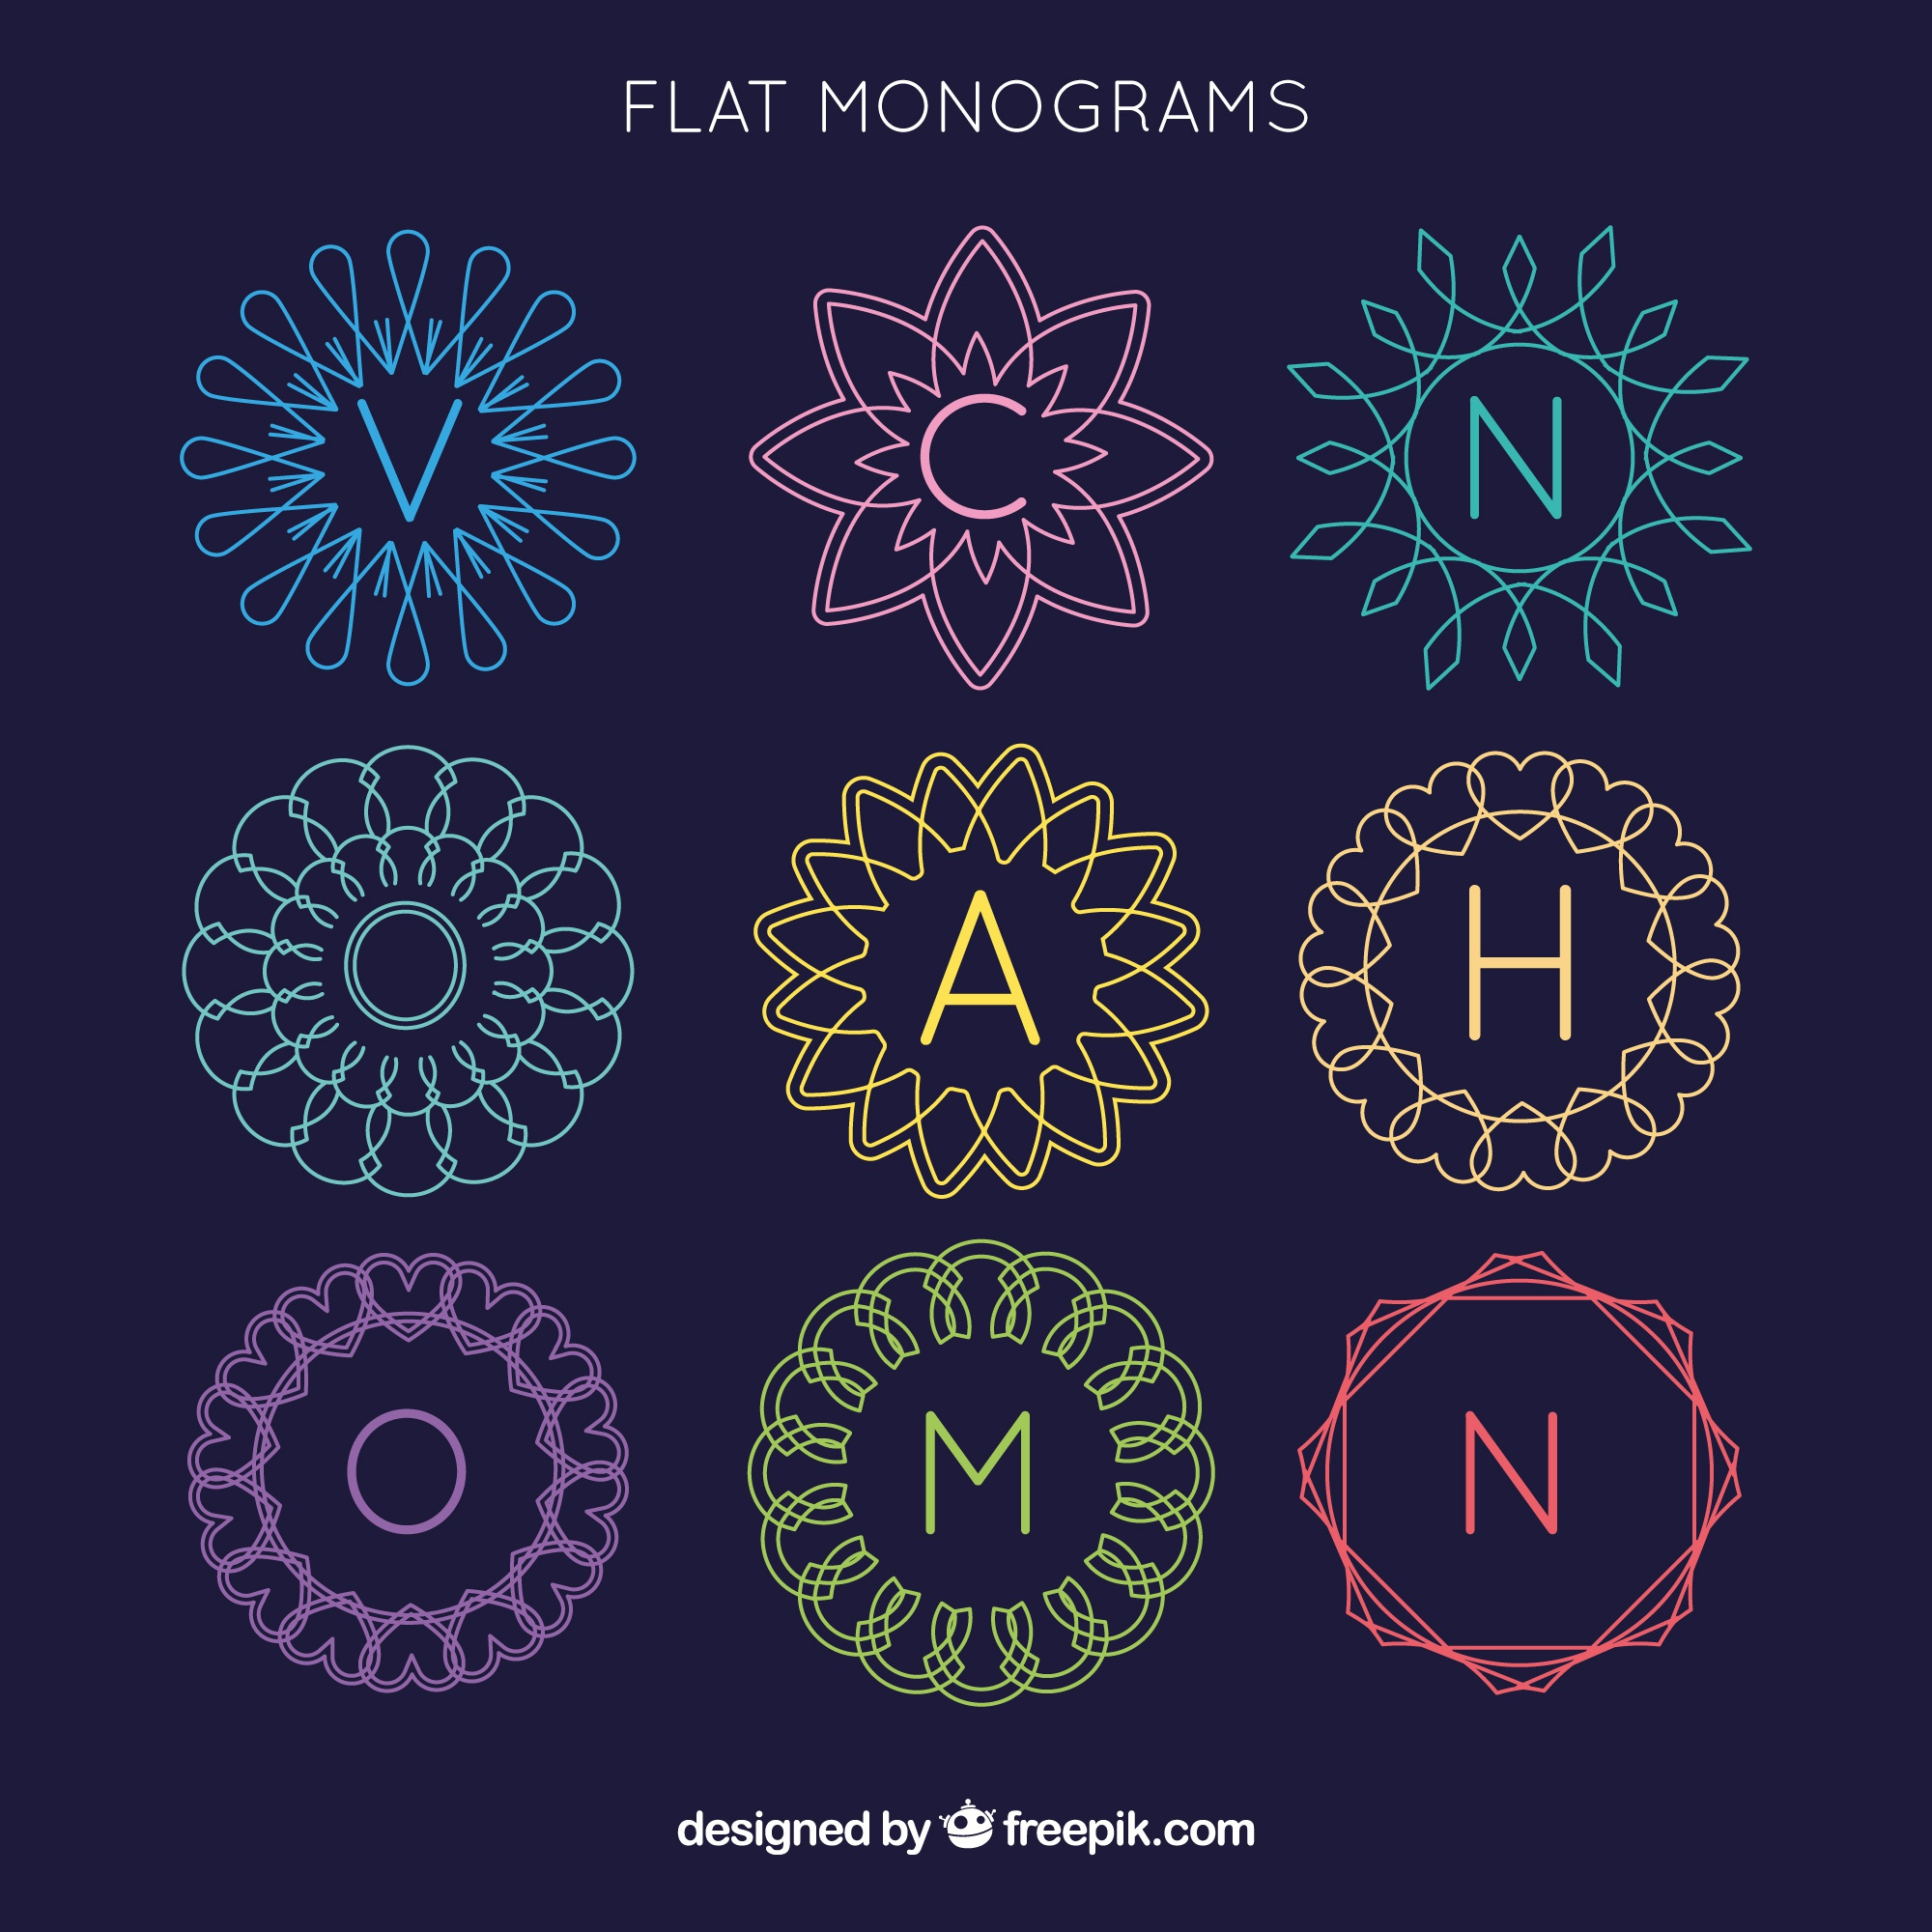 Monograms collection of colors in flat design